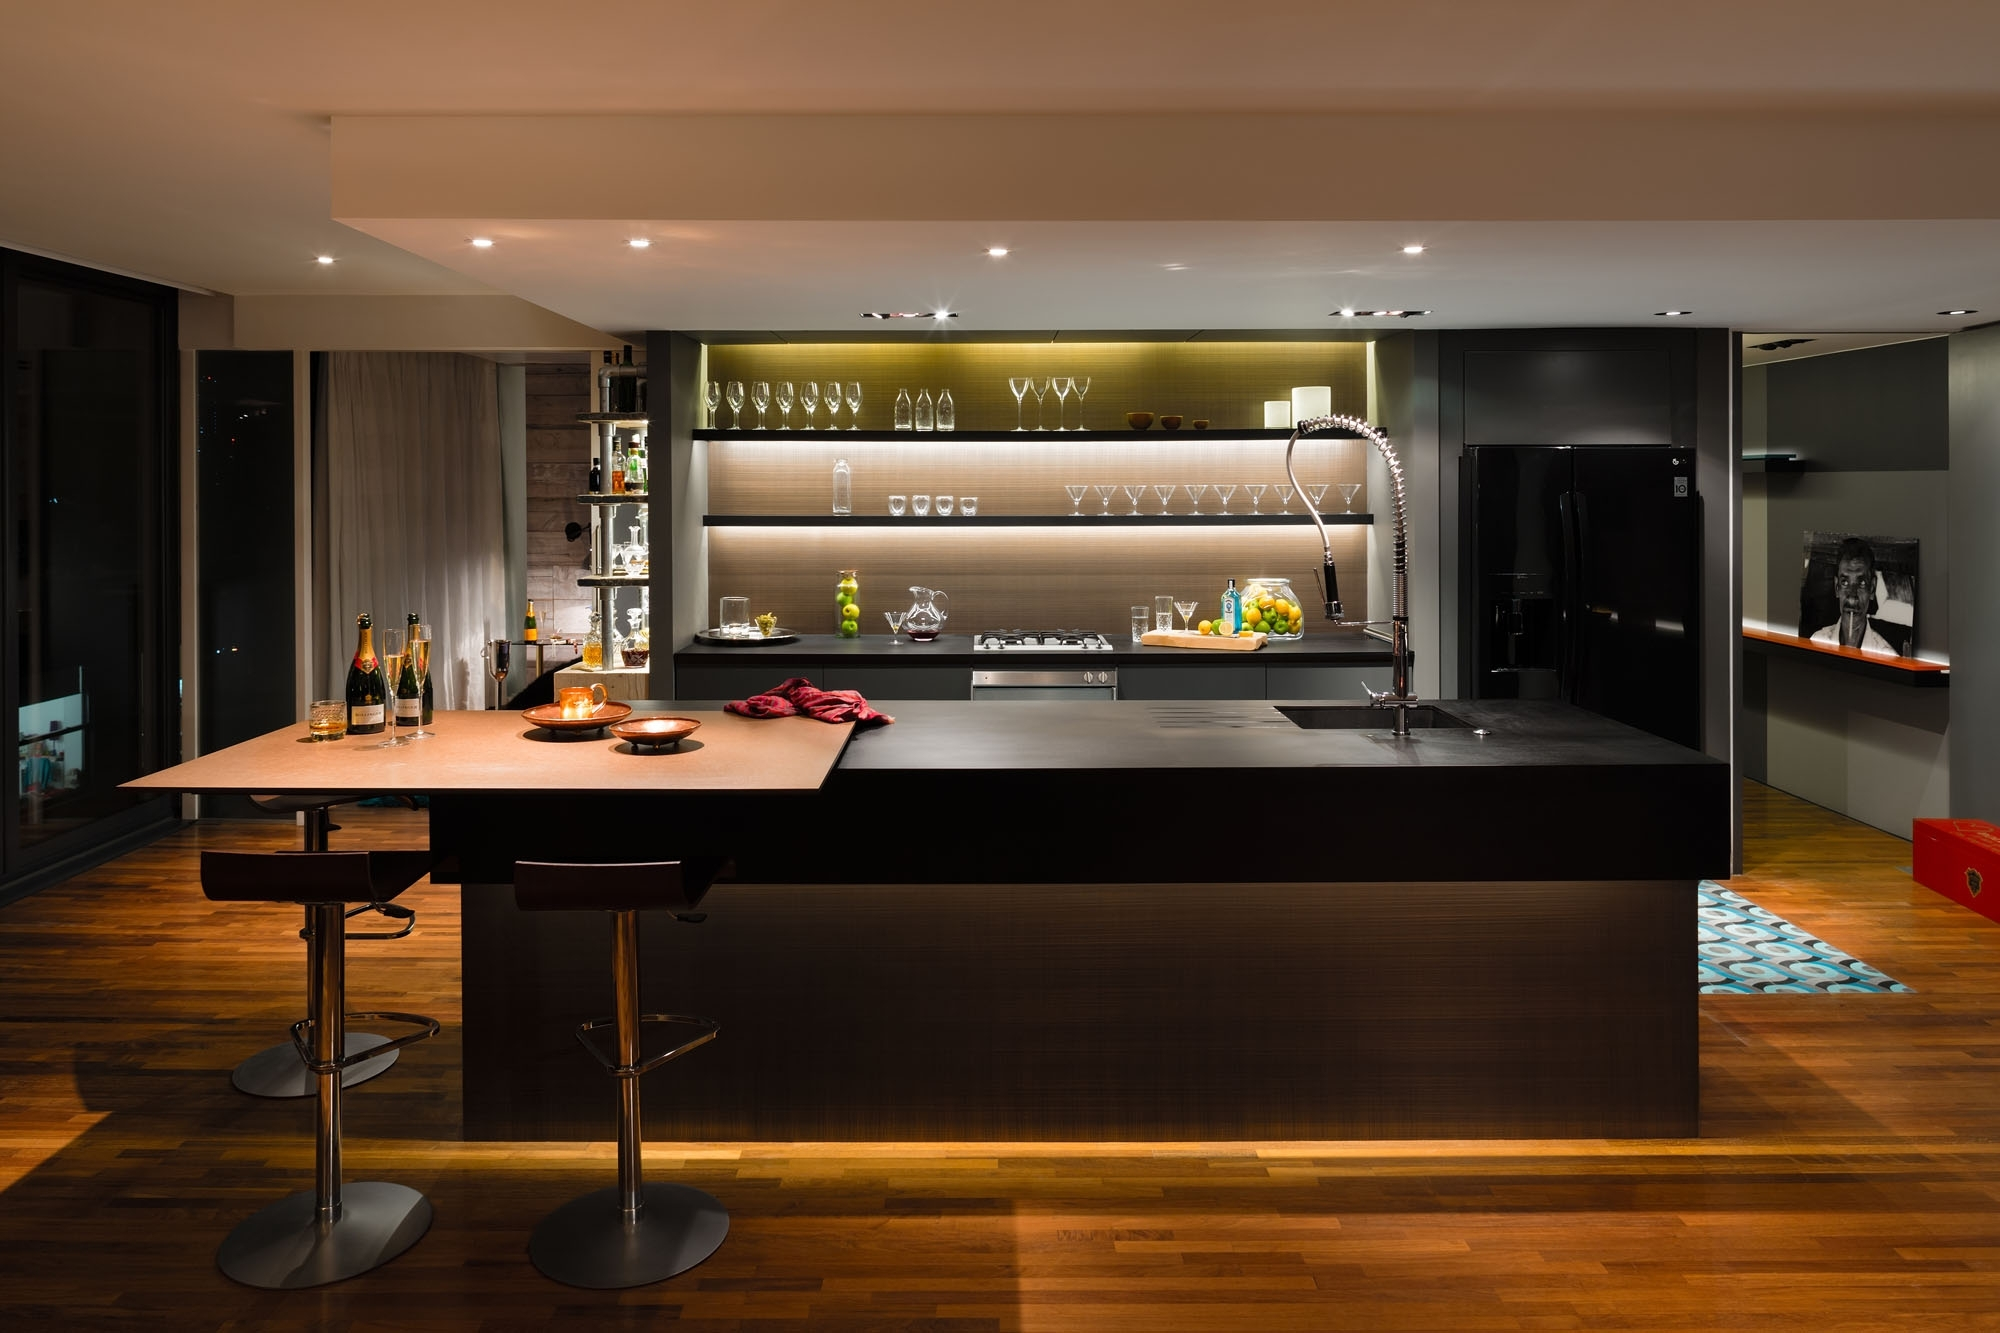 Home Design Floating Glass Bar Shelves Cabinetry Electrical With Floating Glass Shelves For Bar (View 7 of 15)